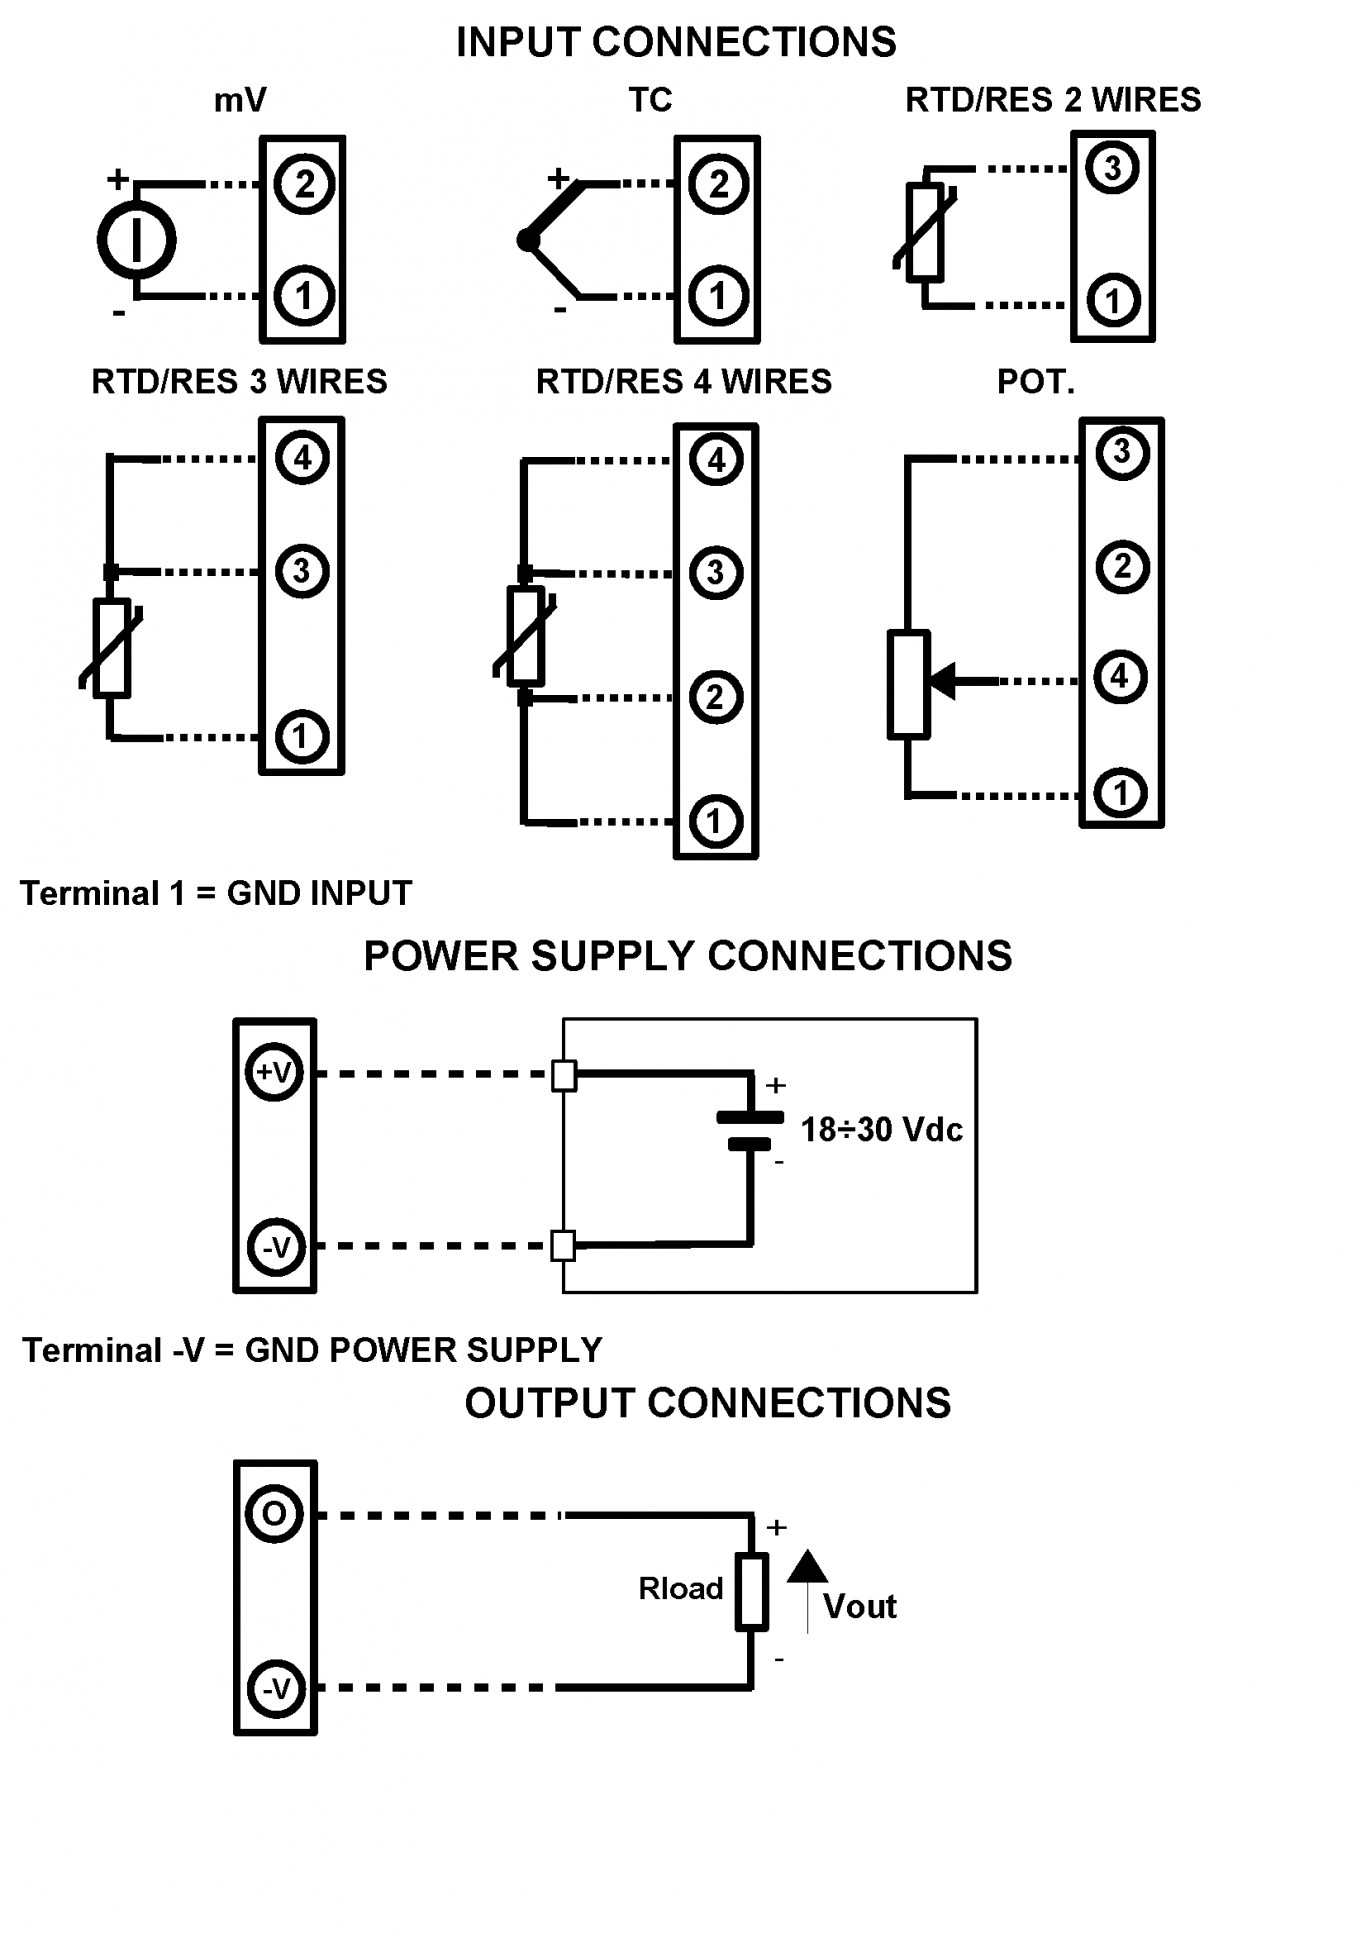 hight resolution of rtd wire colors simple wiring schema rtd 100 connector receptacle female get 3 wire rtd wiring